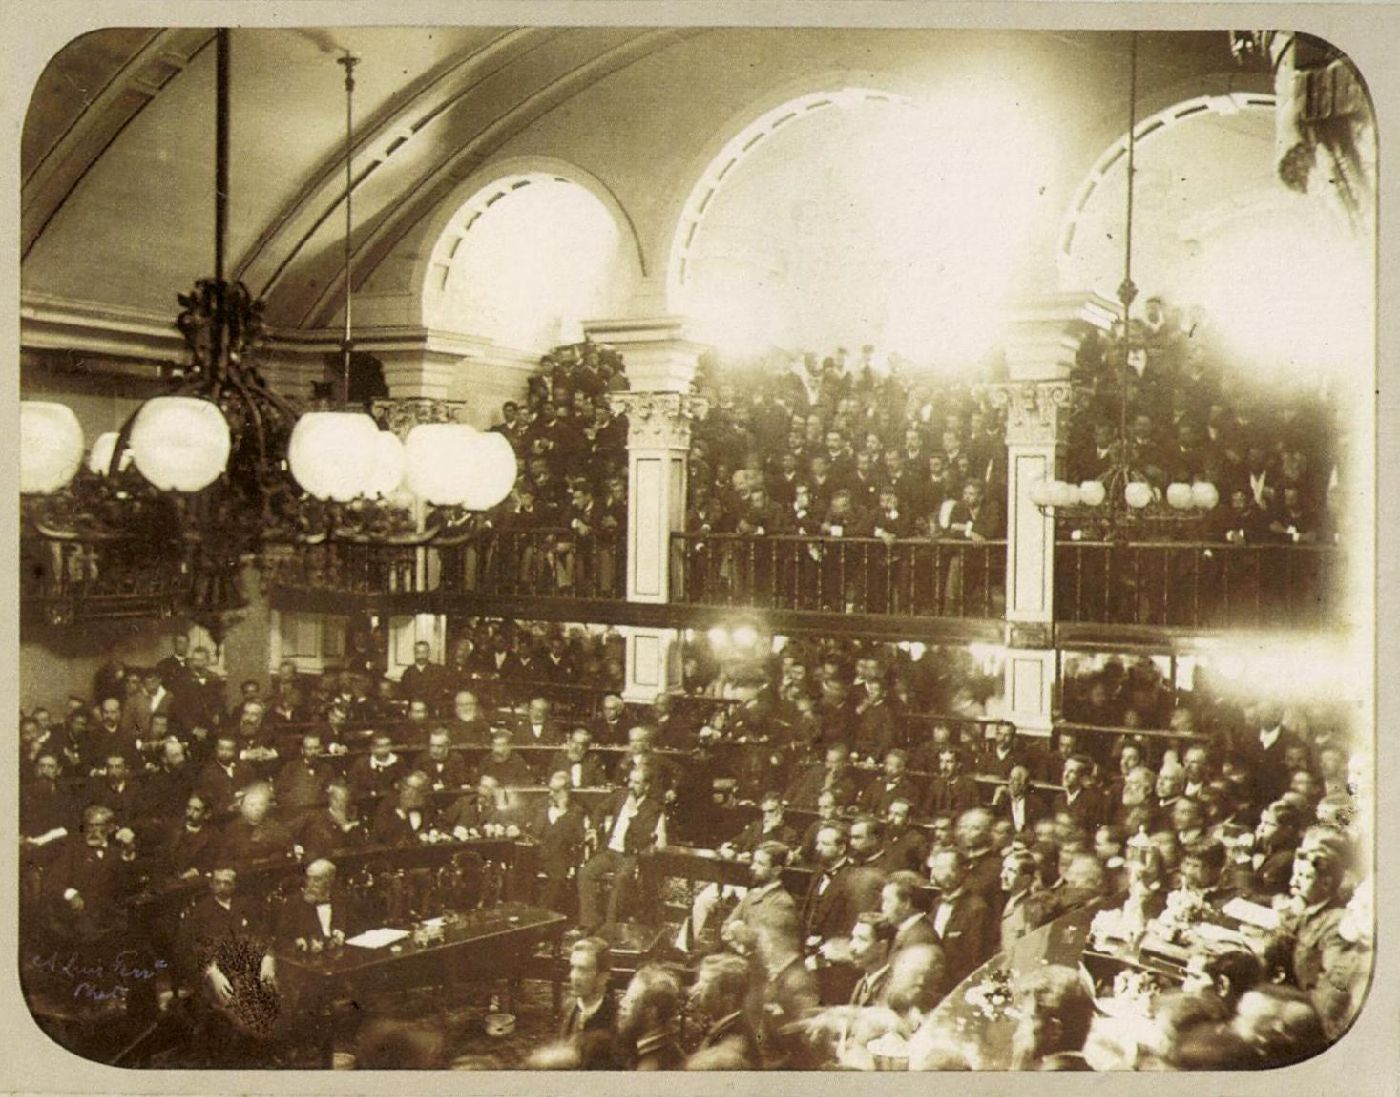 The Brazilian Senate passing the bill that abolished slavery in the country, 1888.